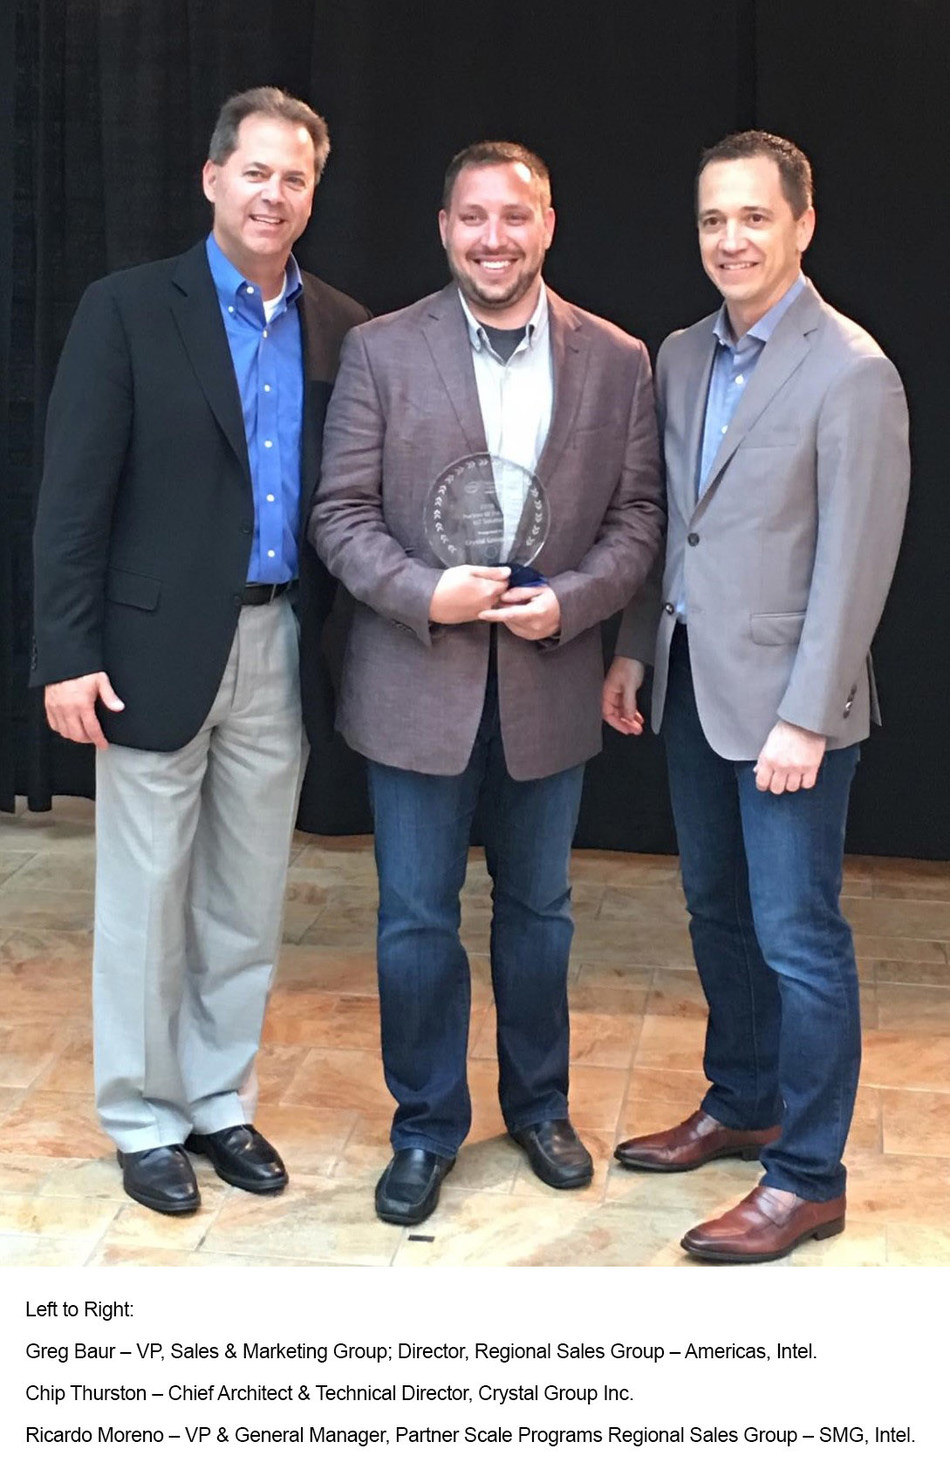 Left to Right: Greg Baur- VP, Sales & Marketing Group; Director, Regional Sales Group- Americas, Intel Chip Thurston- Chief Architect & Technical Director, Crystal Group Inc. Ricardo Moreno- VP & General Manager, Partner Scale Programs Regional Sales Group- SMG, Intel.